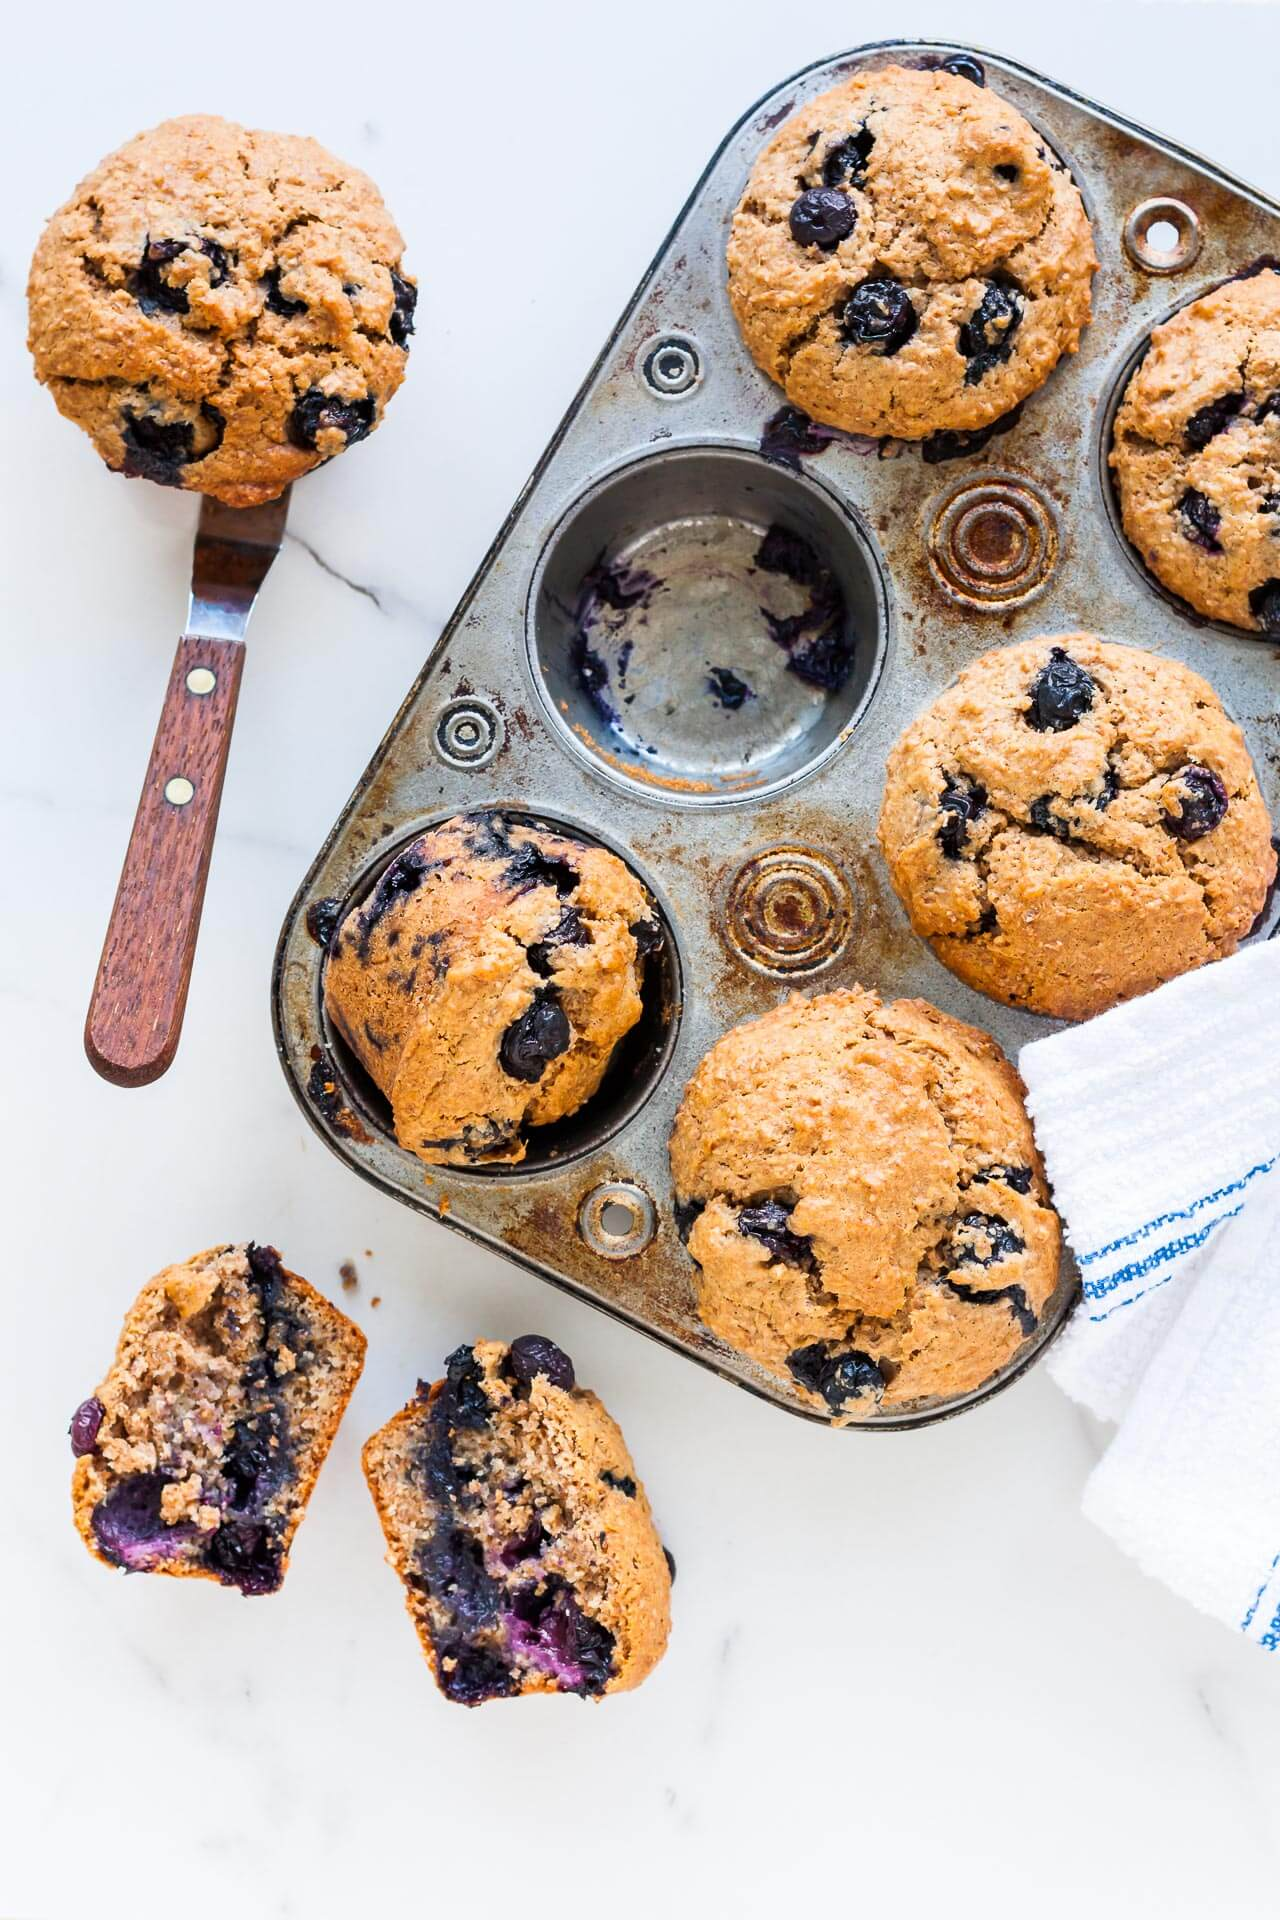 Vintage muffin pan with baked blueberry bran muffins. One cup empty and muffin is on side on an offset spatula. One muffin is broken open to show moist interior of muffin